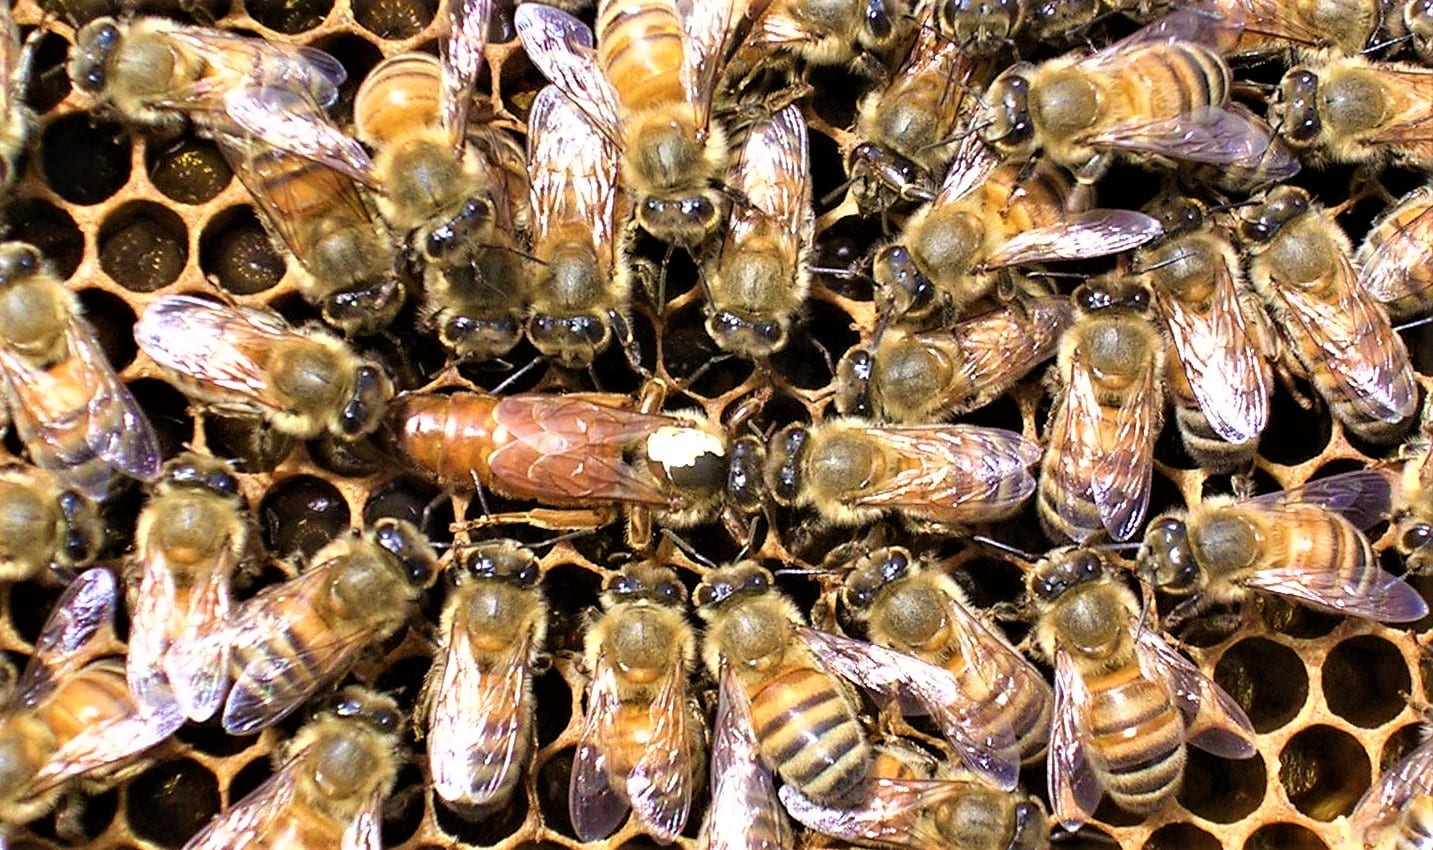 4ce0a607-110d-4132-9957-7cbcadab38cfhoney bee for BOTTOM of Chem. Free page